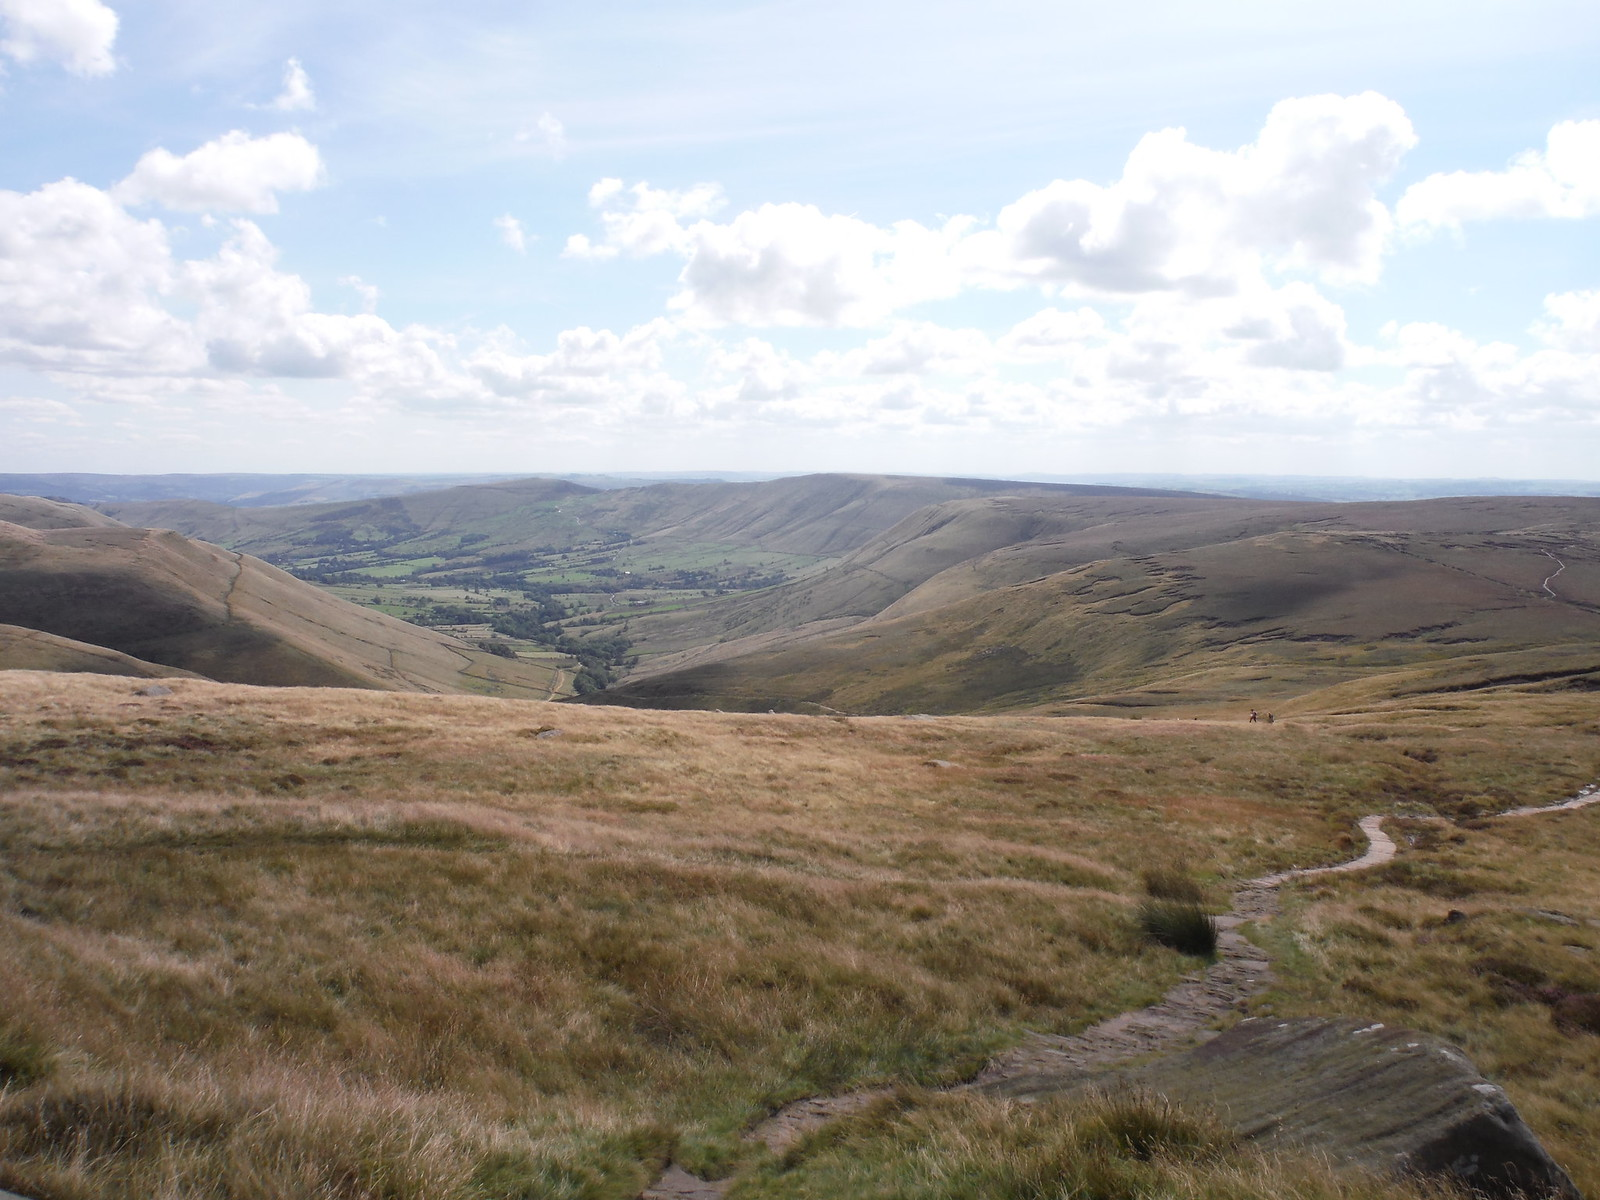 Vale of Edale and Great Ridge, from Swine's Back SWC Walk 303 - Edale Circular (via Kinder Scout and Mam Tor)